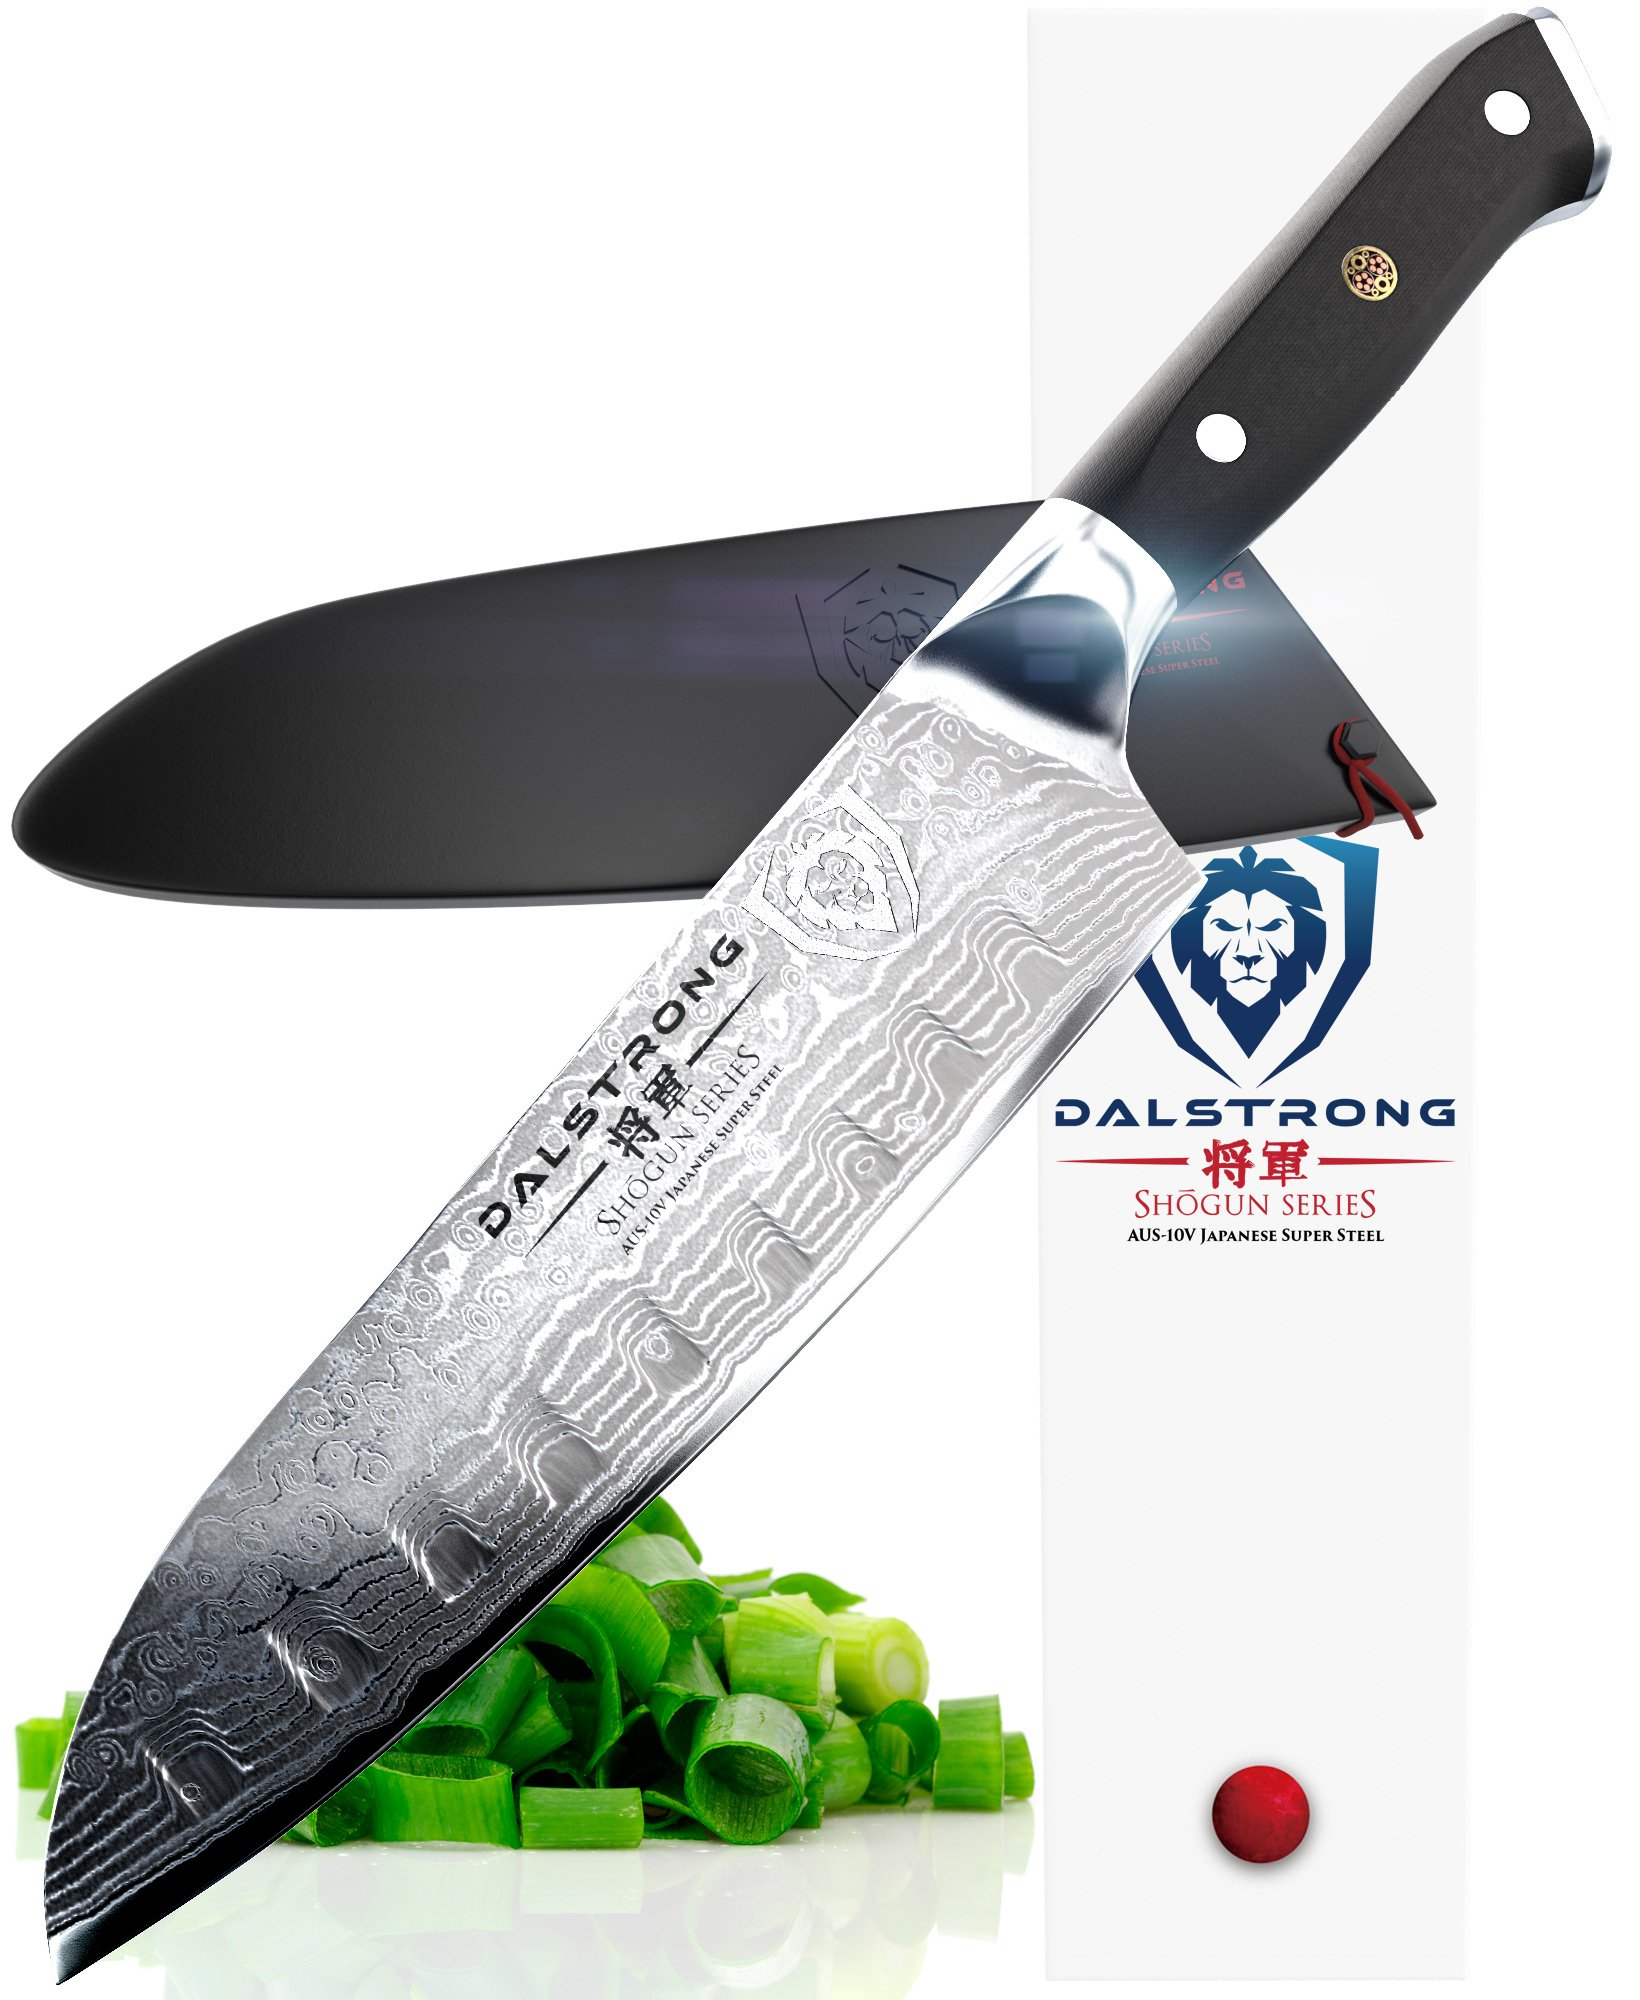 DALSTRONG Santoku Knife - Shogun Series - AUS-10V Japanese Steel 67 Layers - Vacuum Treated - 7'' (180mm)